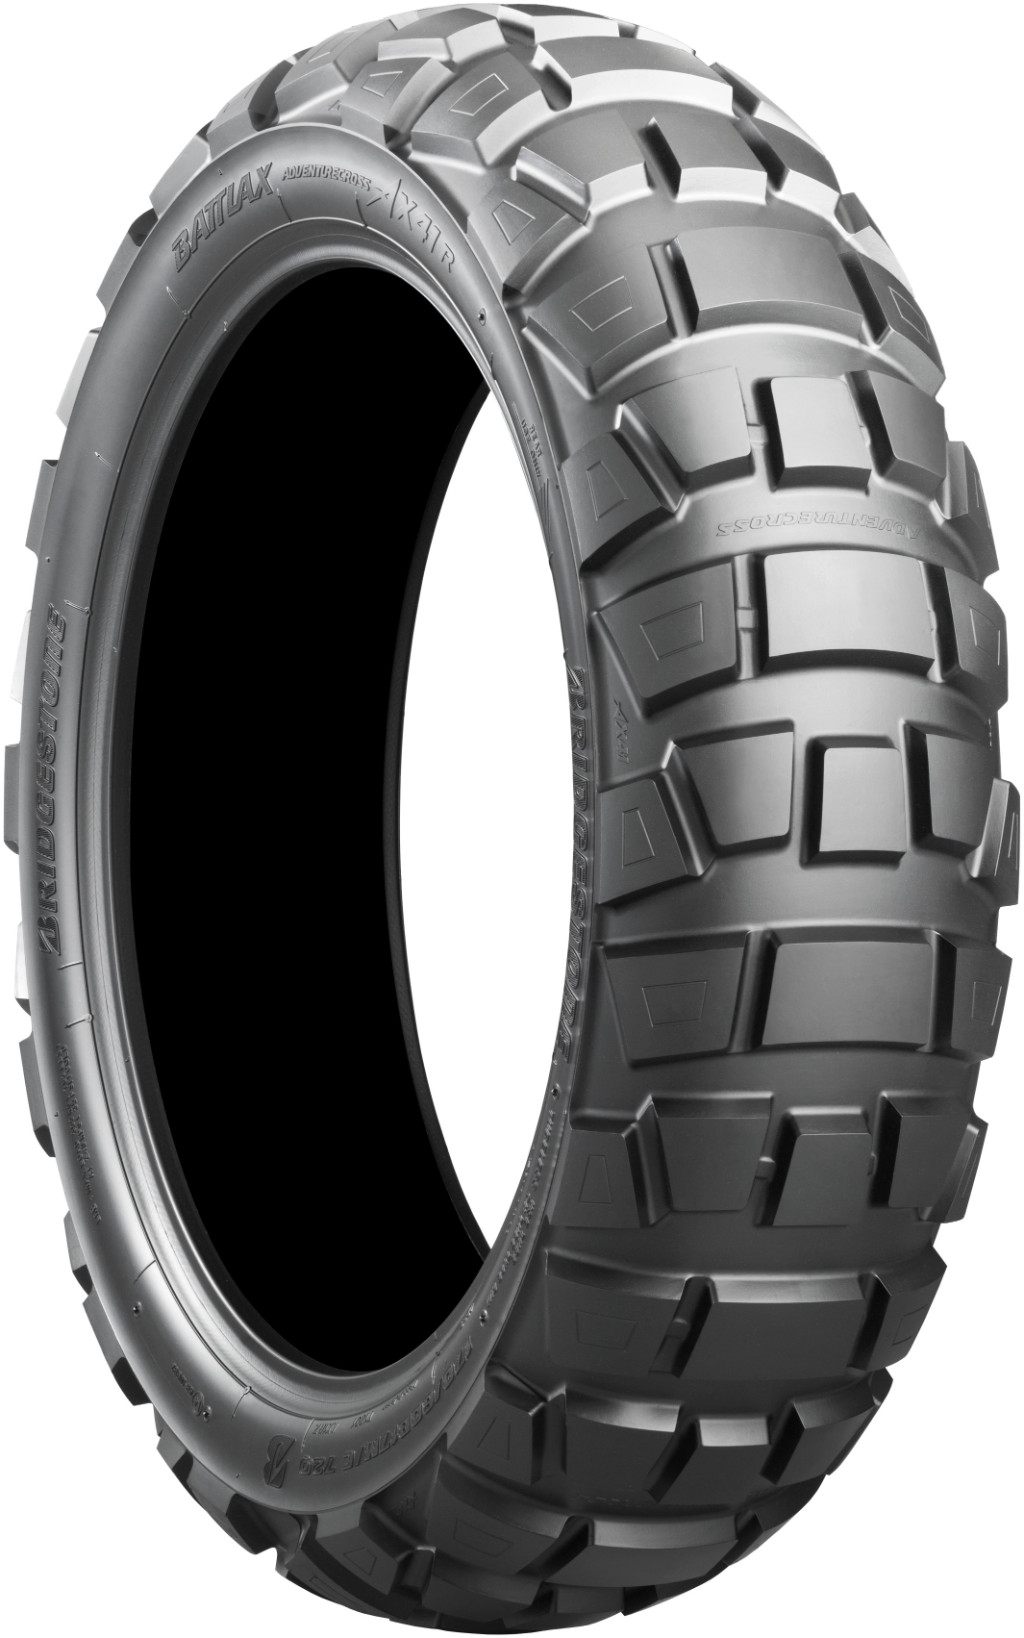 BRIDGESTONE BATTLAX ADVENTURECROSS AX41 [130 / 80B 17M / C 65Q] BATTLAX Adve